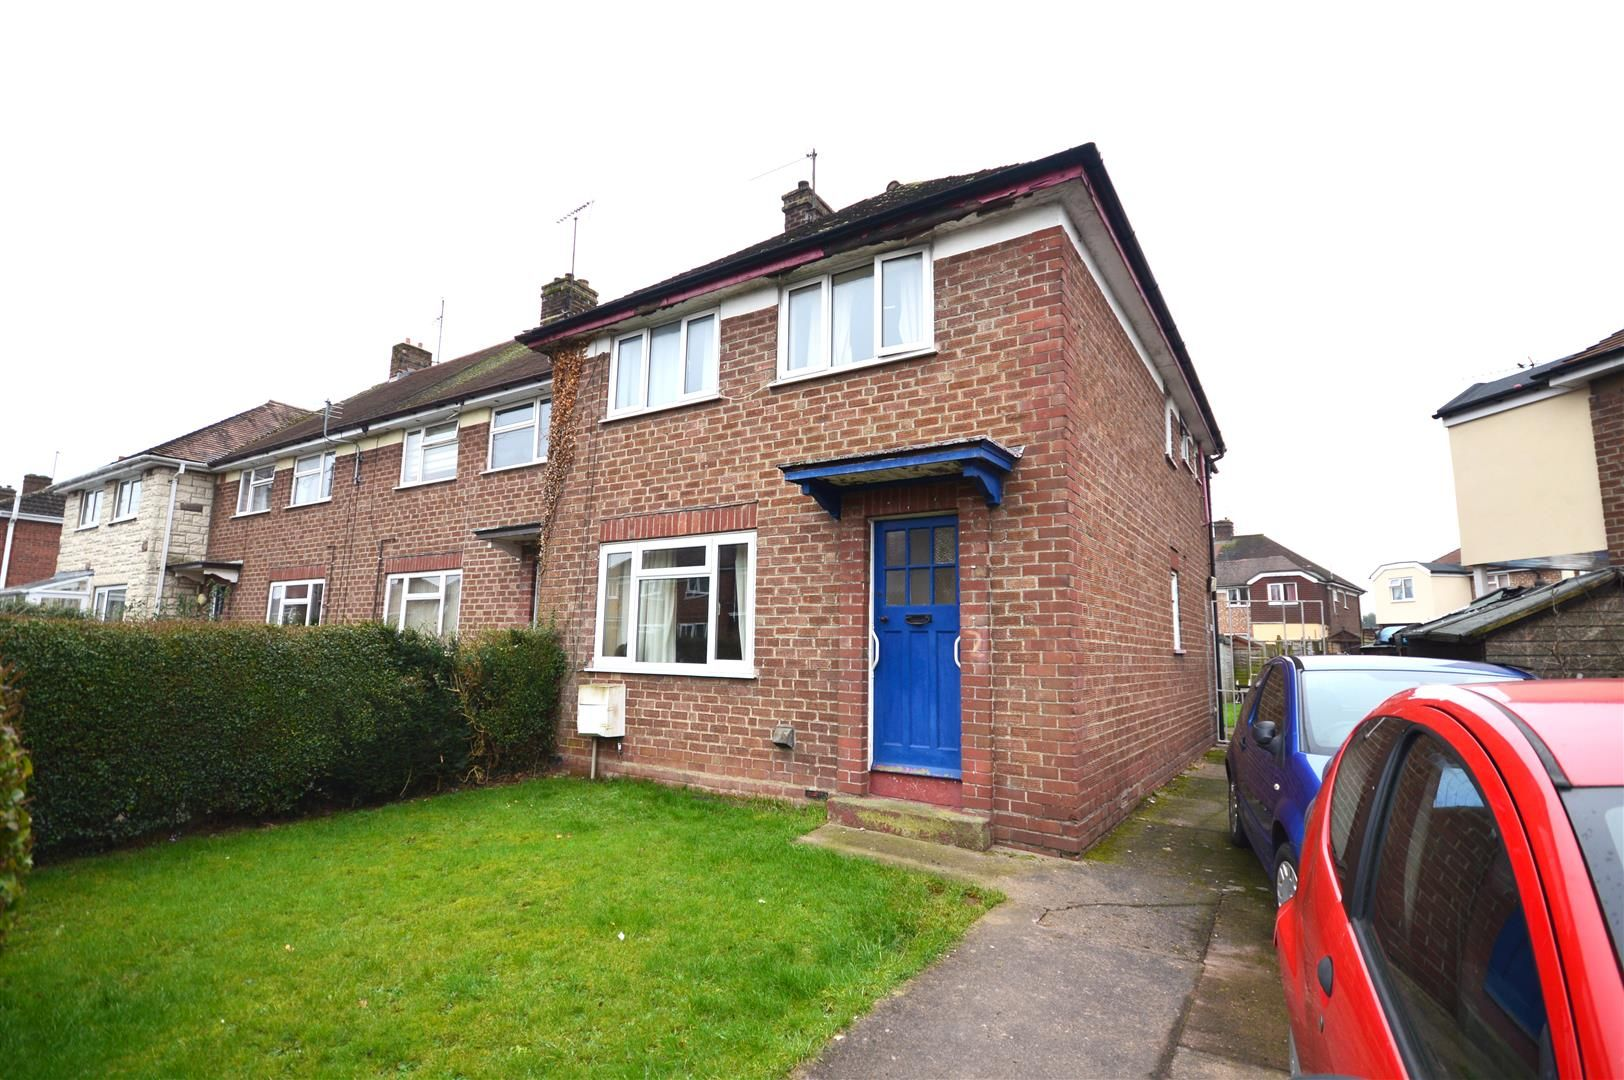 4 bed semi-detached for sale, HR2